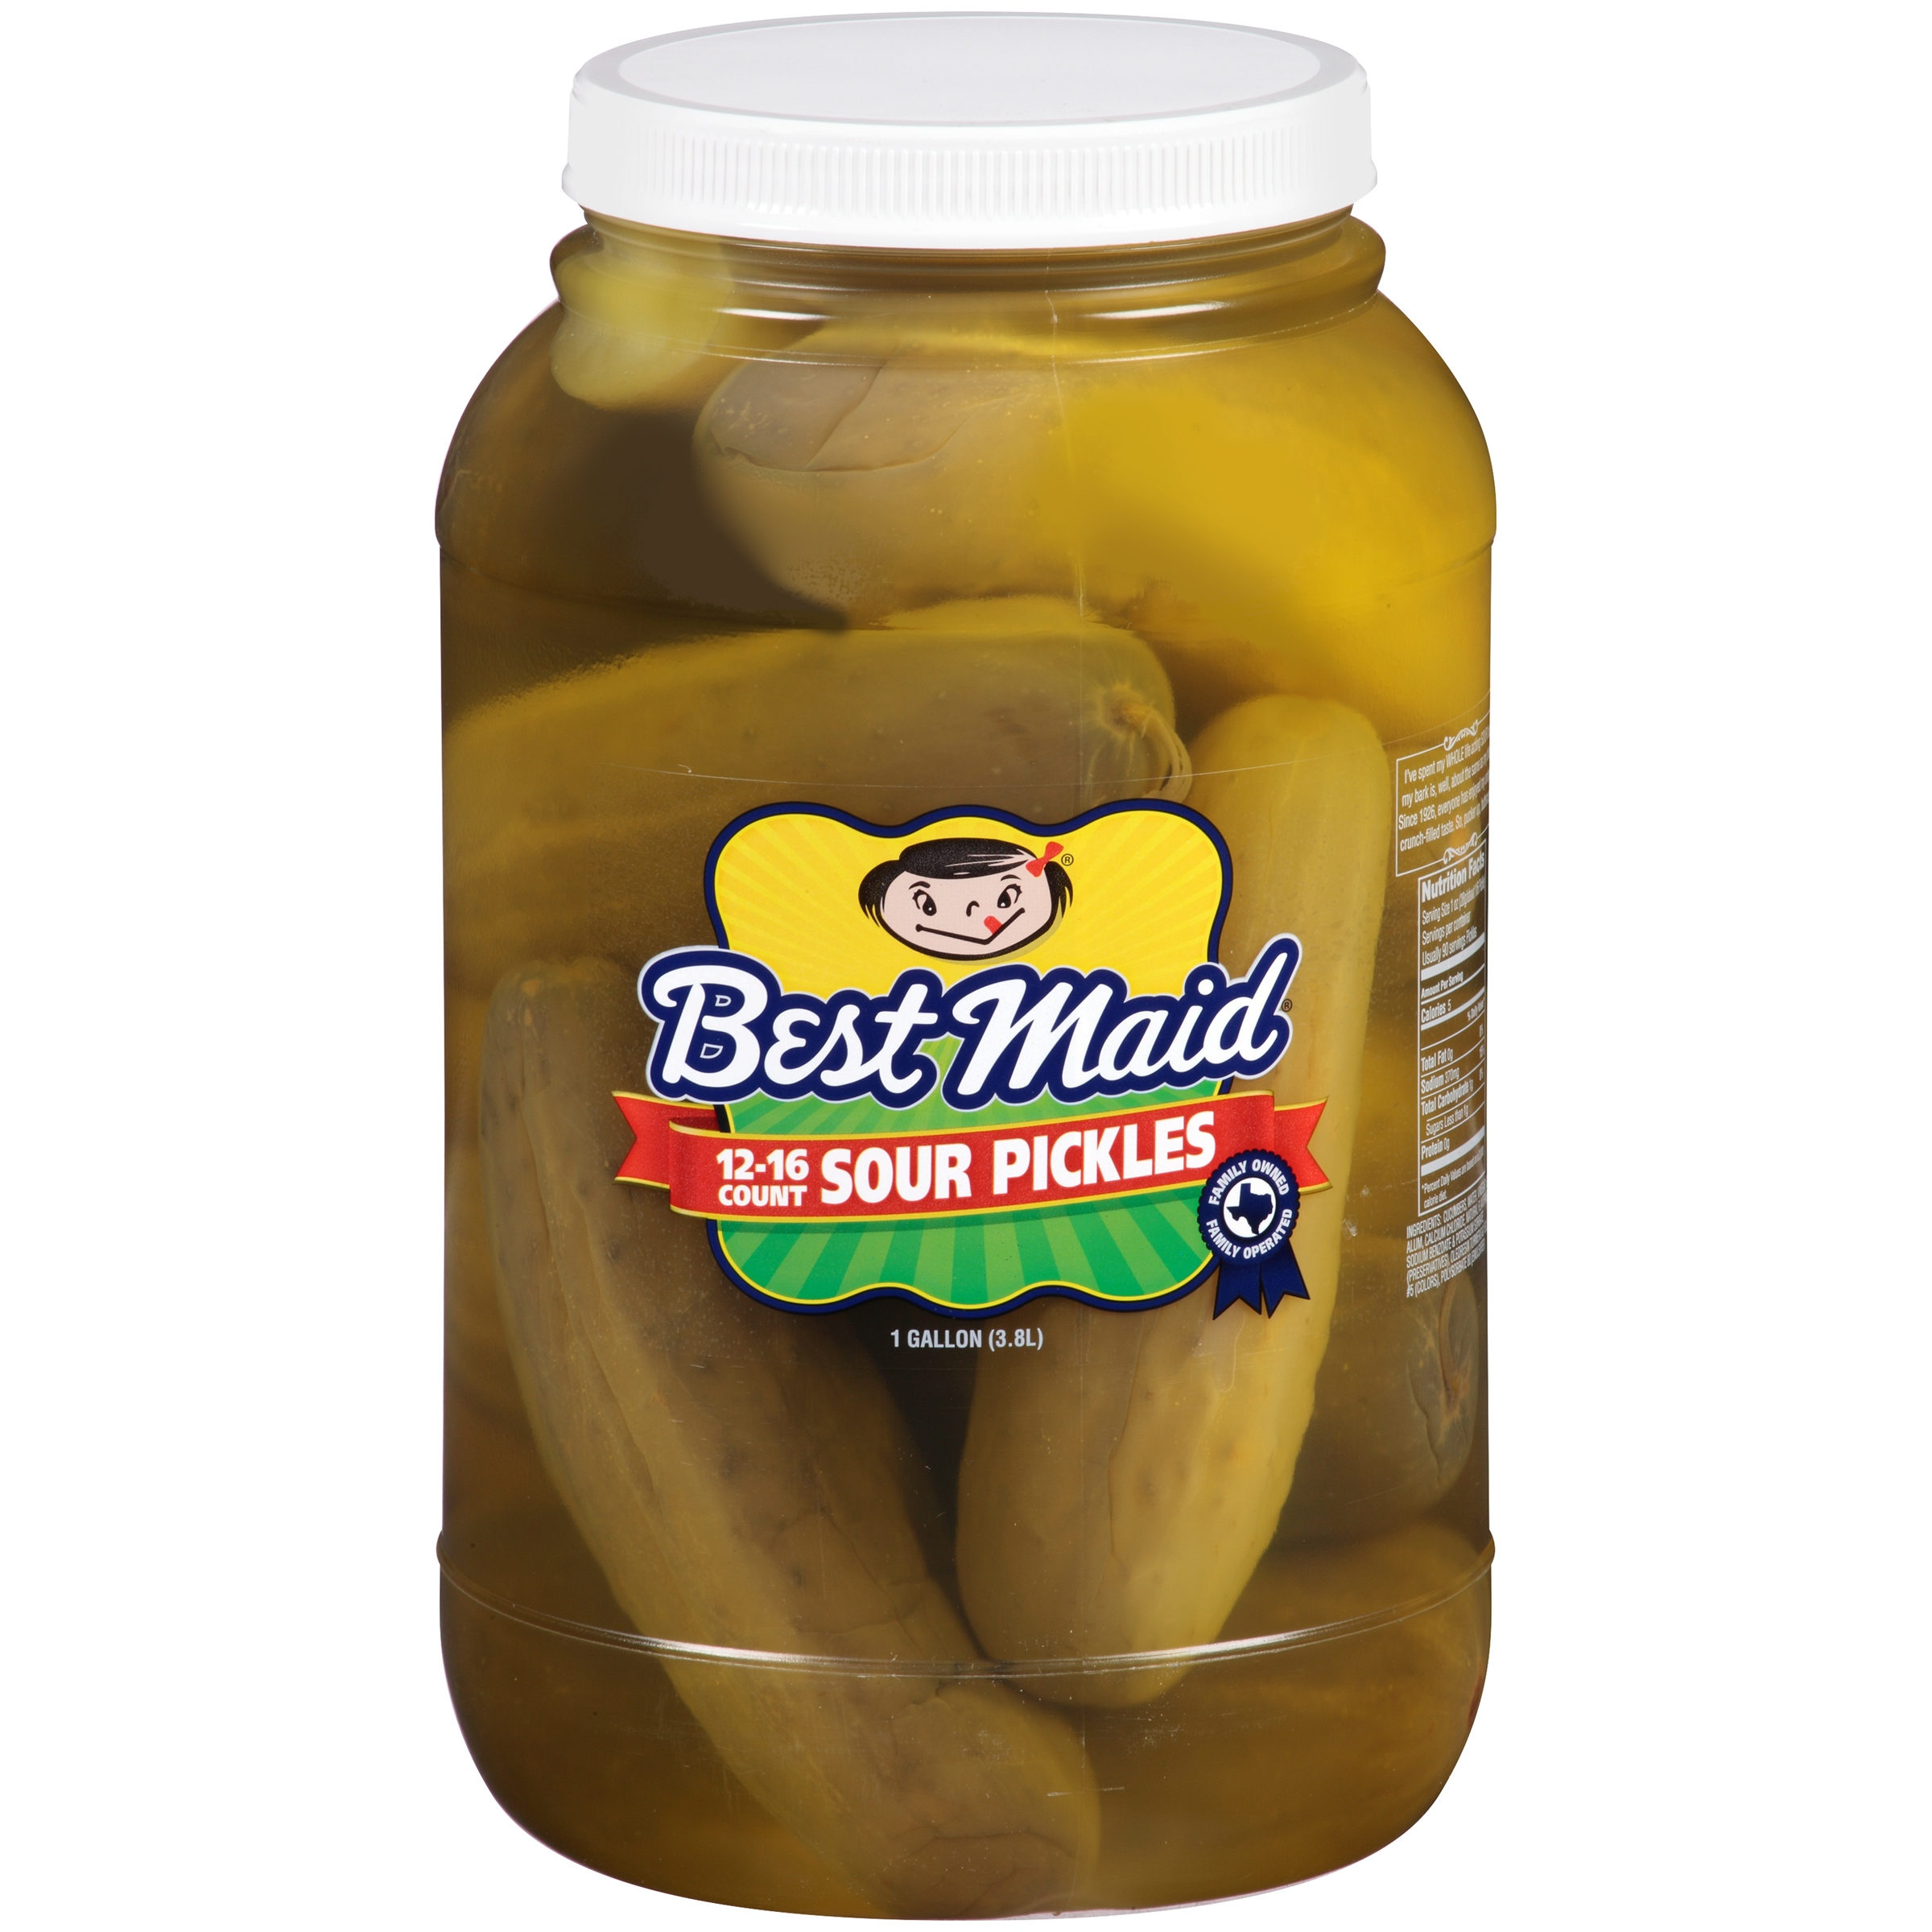 Best Maid: Sour 12-16 Ct Pickles, 1 Gal